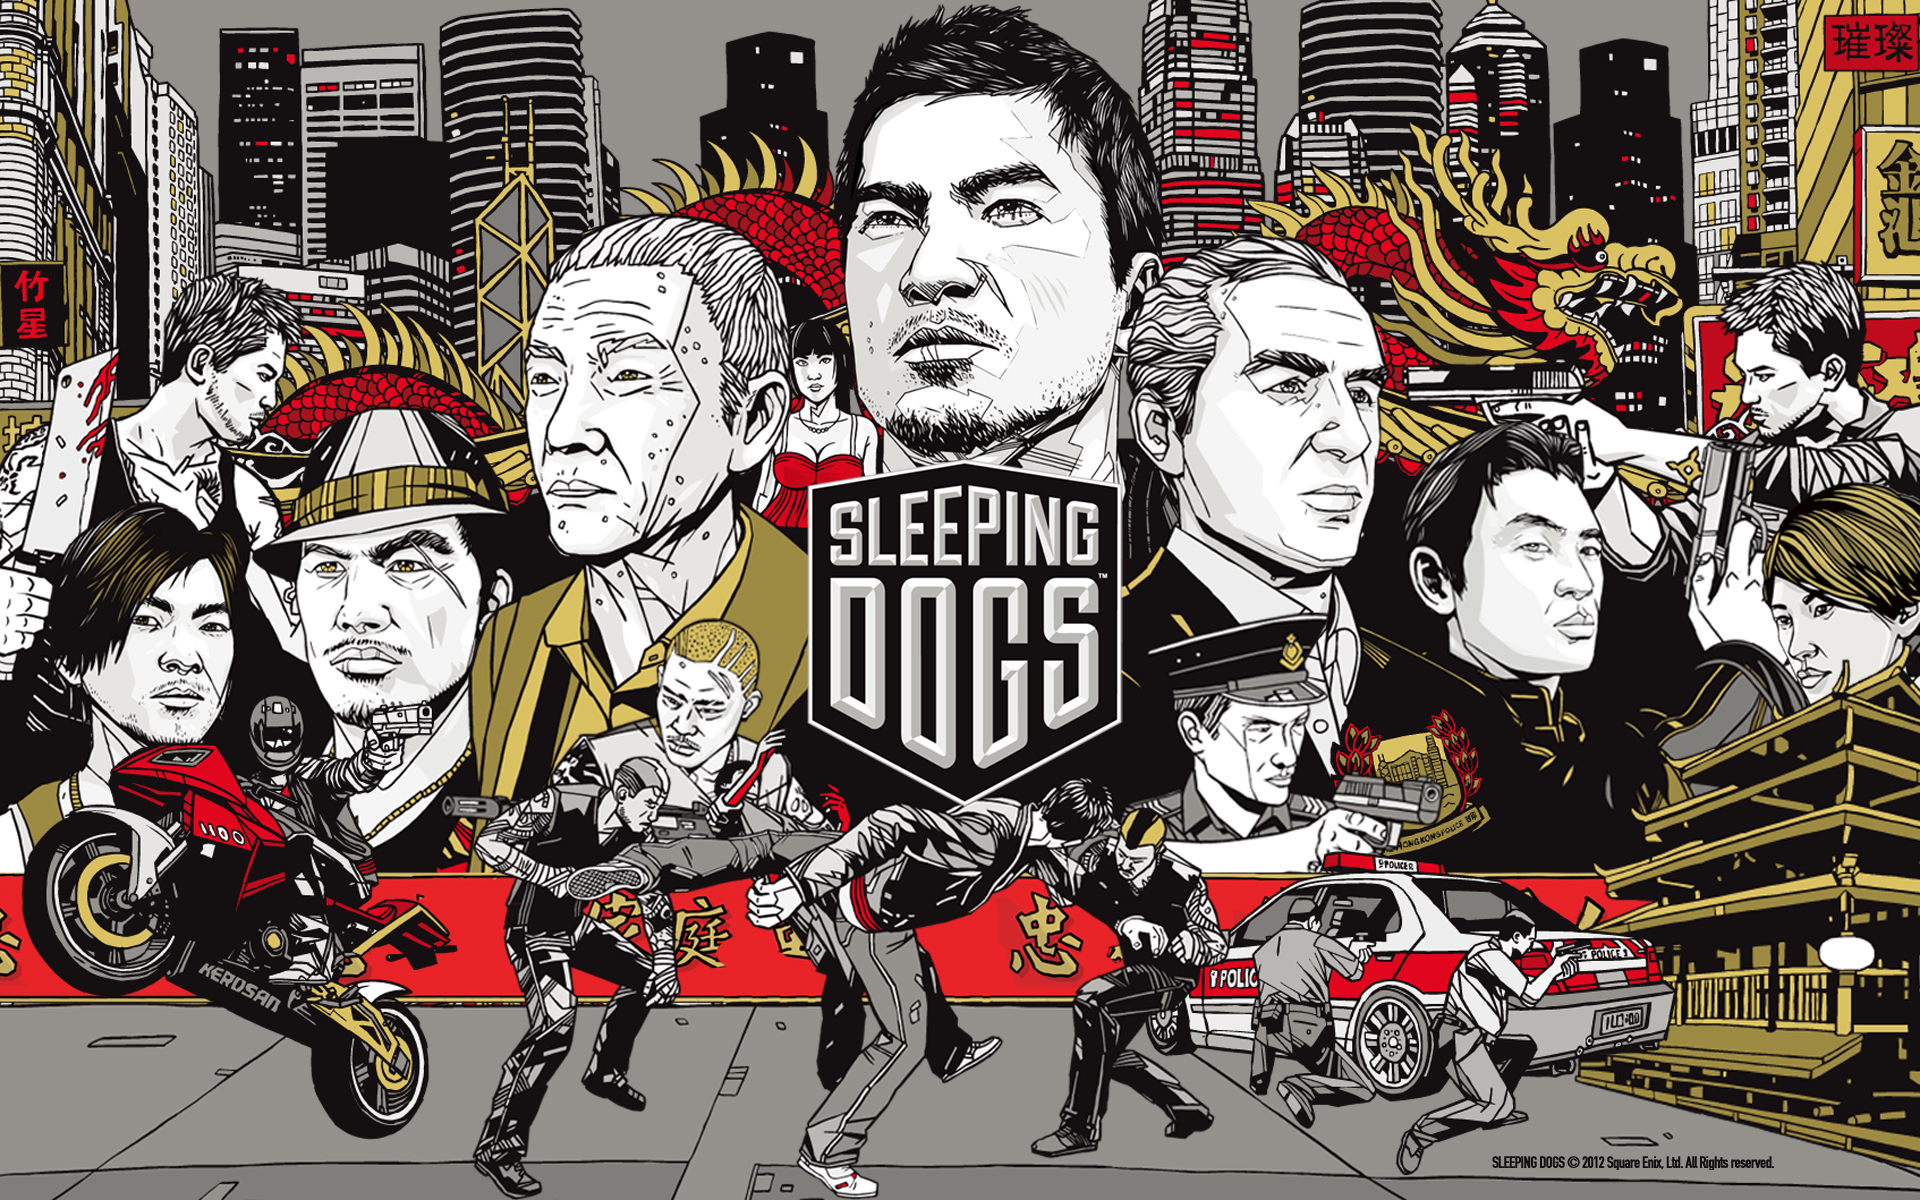 16 Sleeping Dogs HD Wallpapers | Backgrounds - Wallpaper Abyss